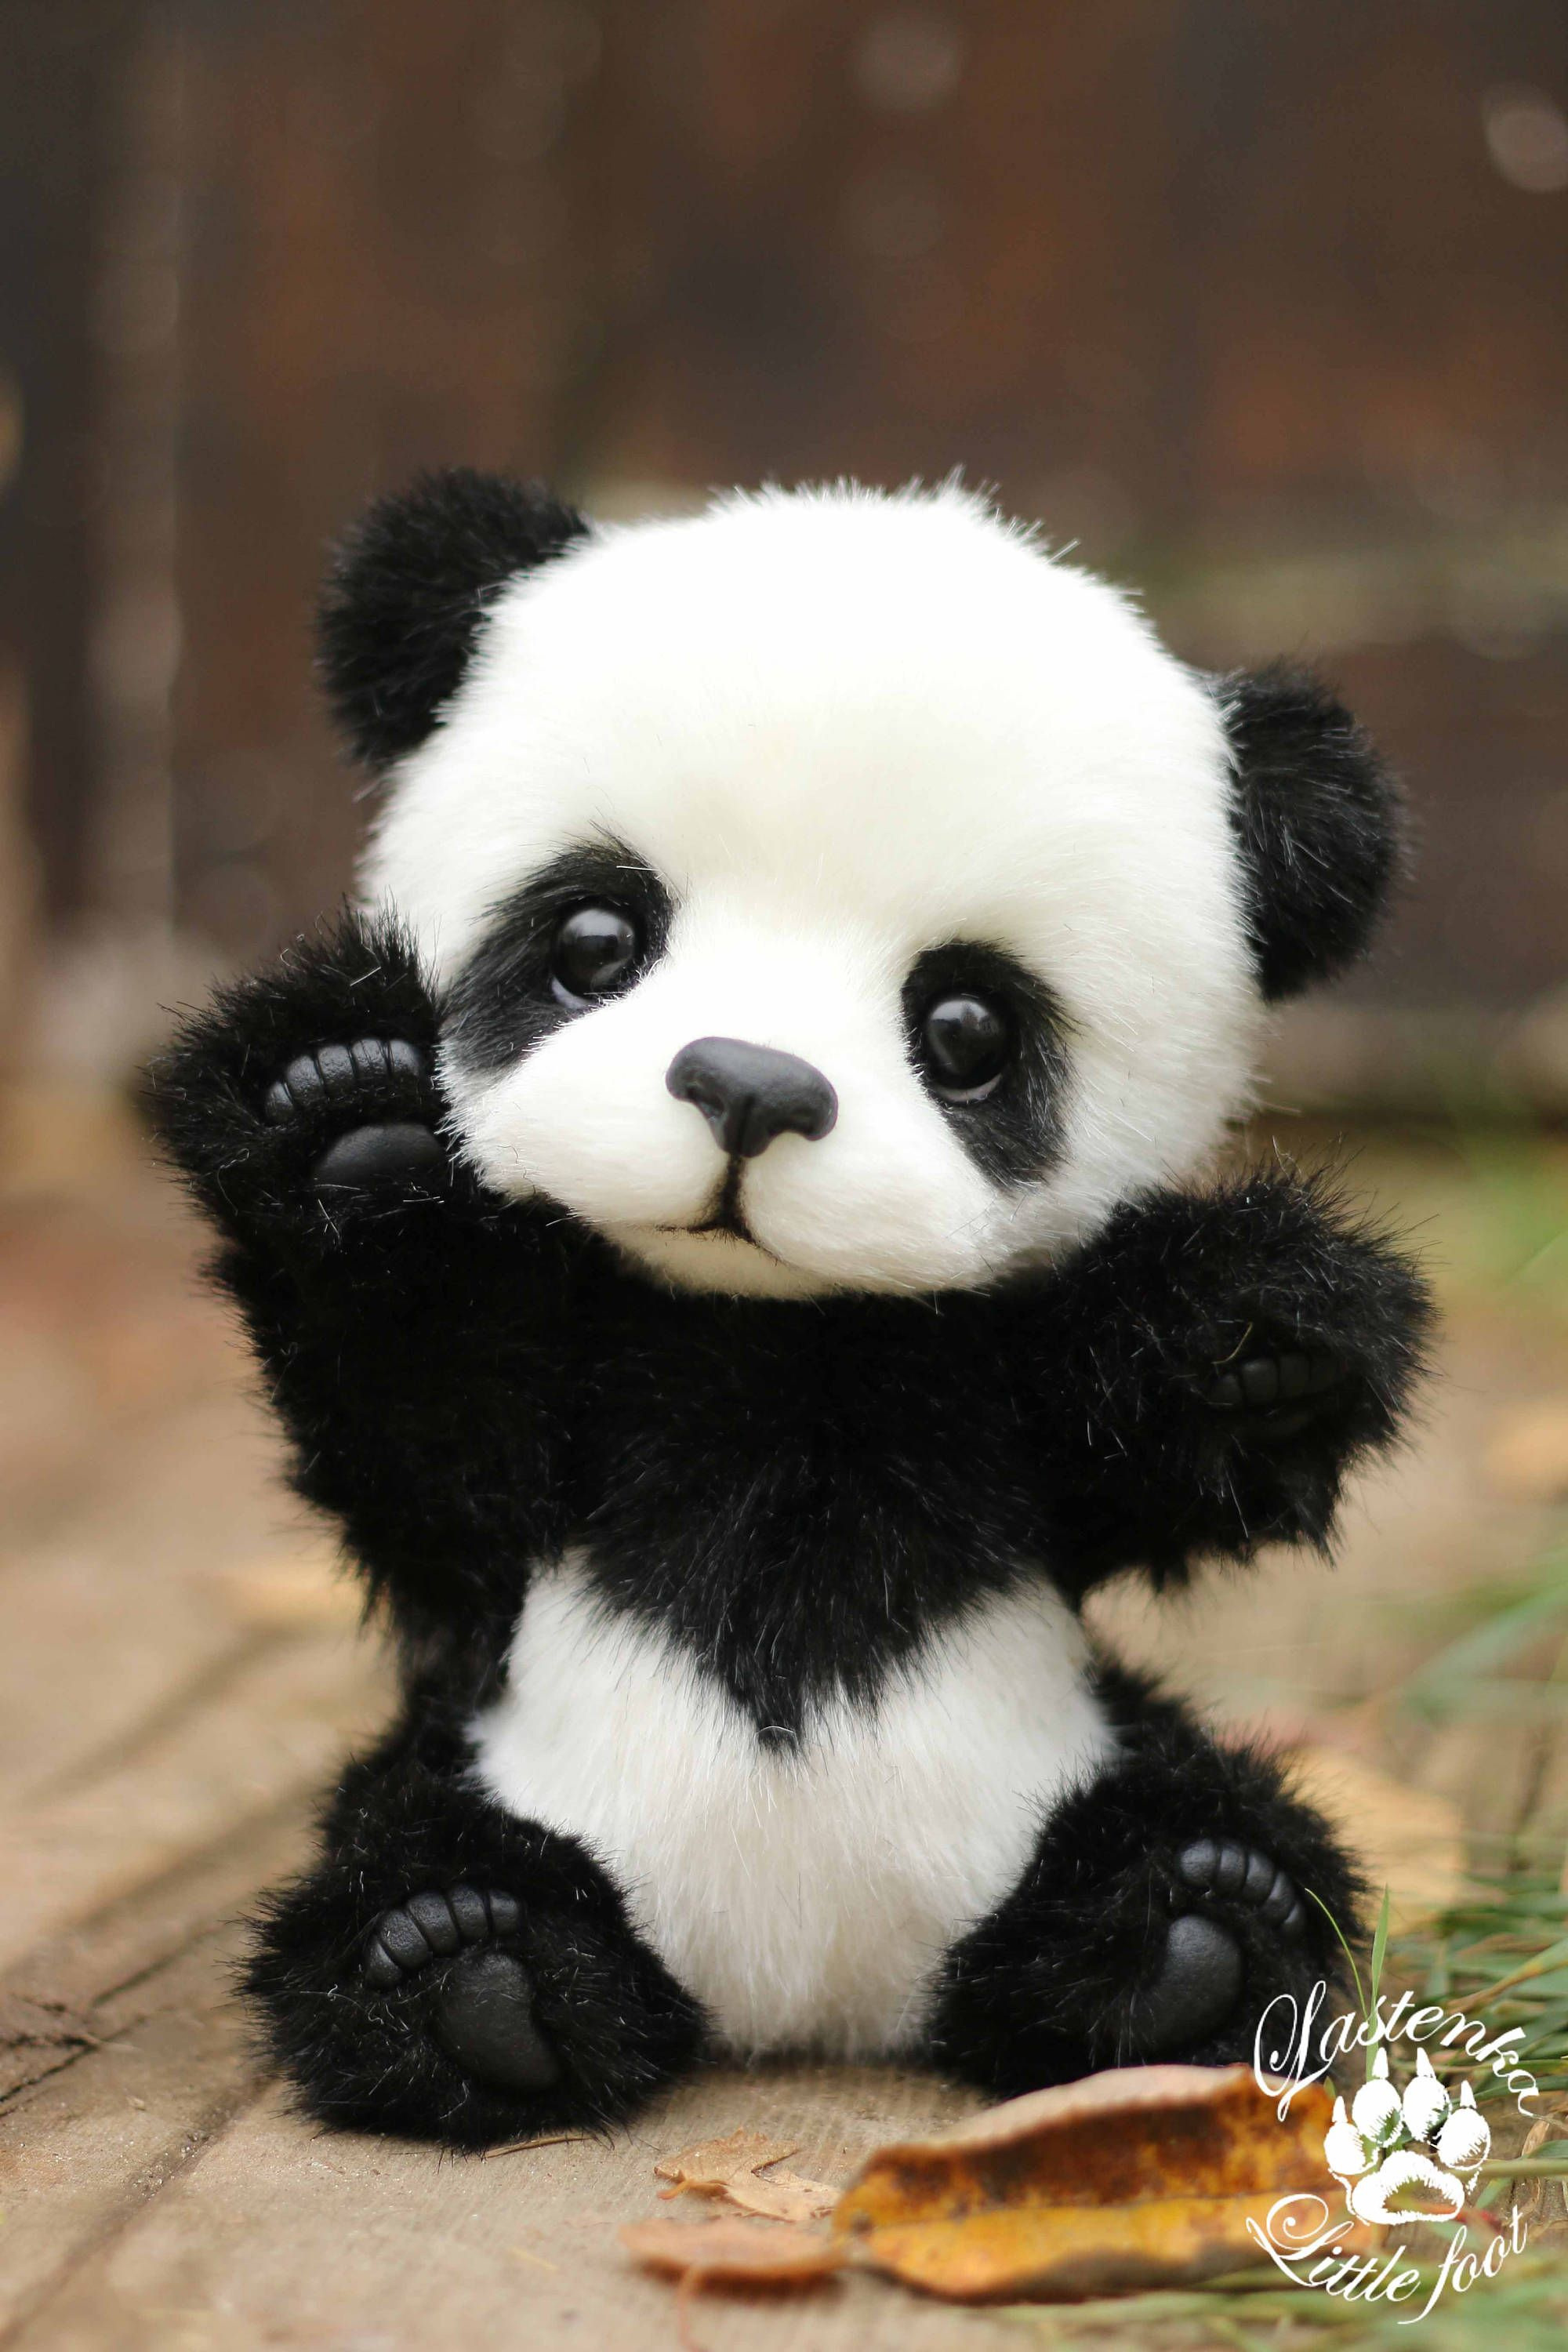 Panda bear Hugo handmade plush collectible artist stuffed teddy bear OOAK toy cute panda cub realistic teddy bear beas gift (made to order) #realisticeye